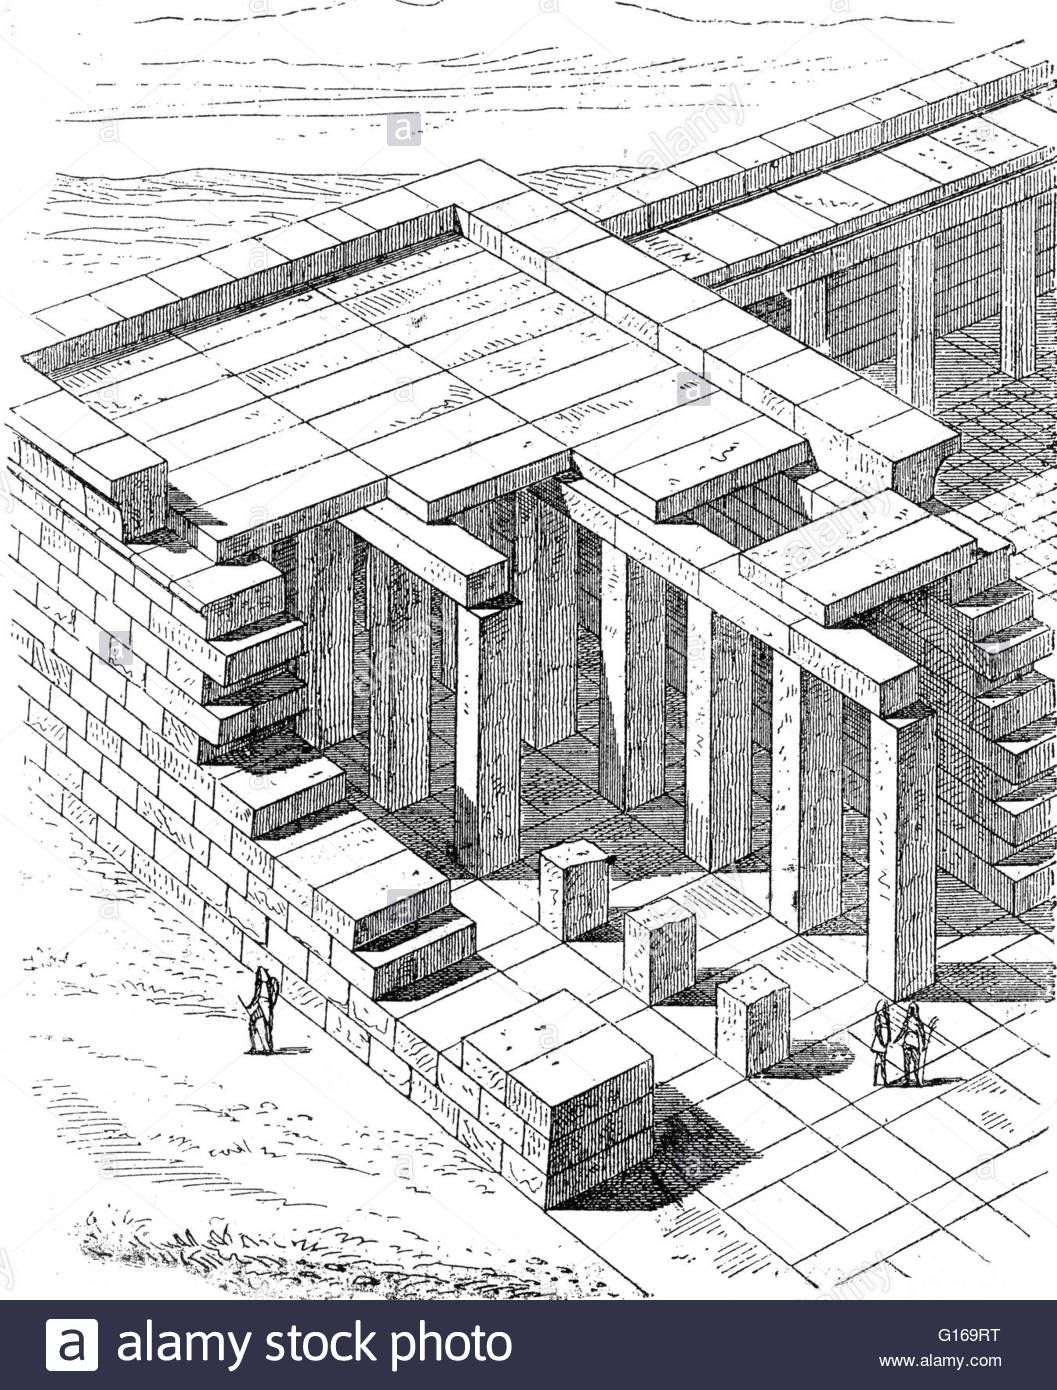 Post And Lintel Is A Simple Construction Method Using A Lintel Header G169rt Jpg 1057 1390 Ancient Egyptian Architecture History Encyclopedia Ancient Egyptian